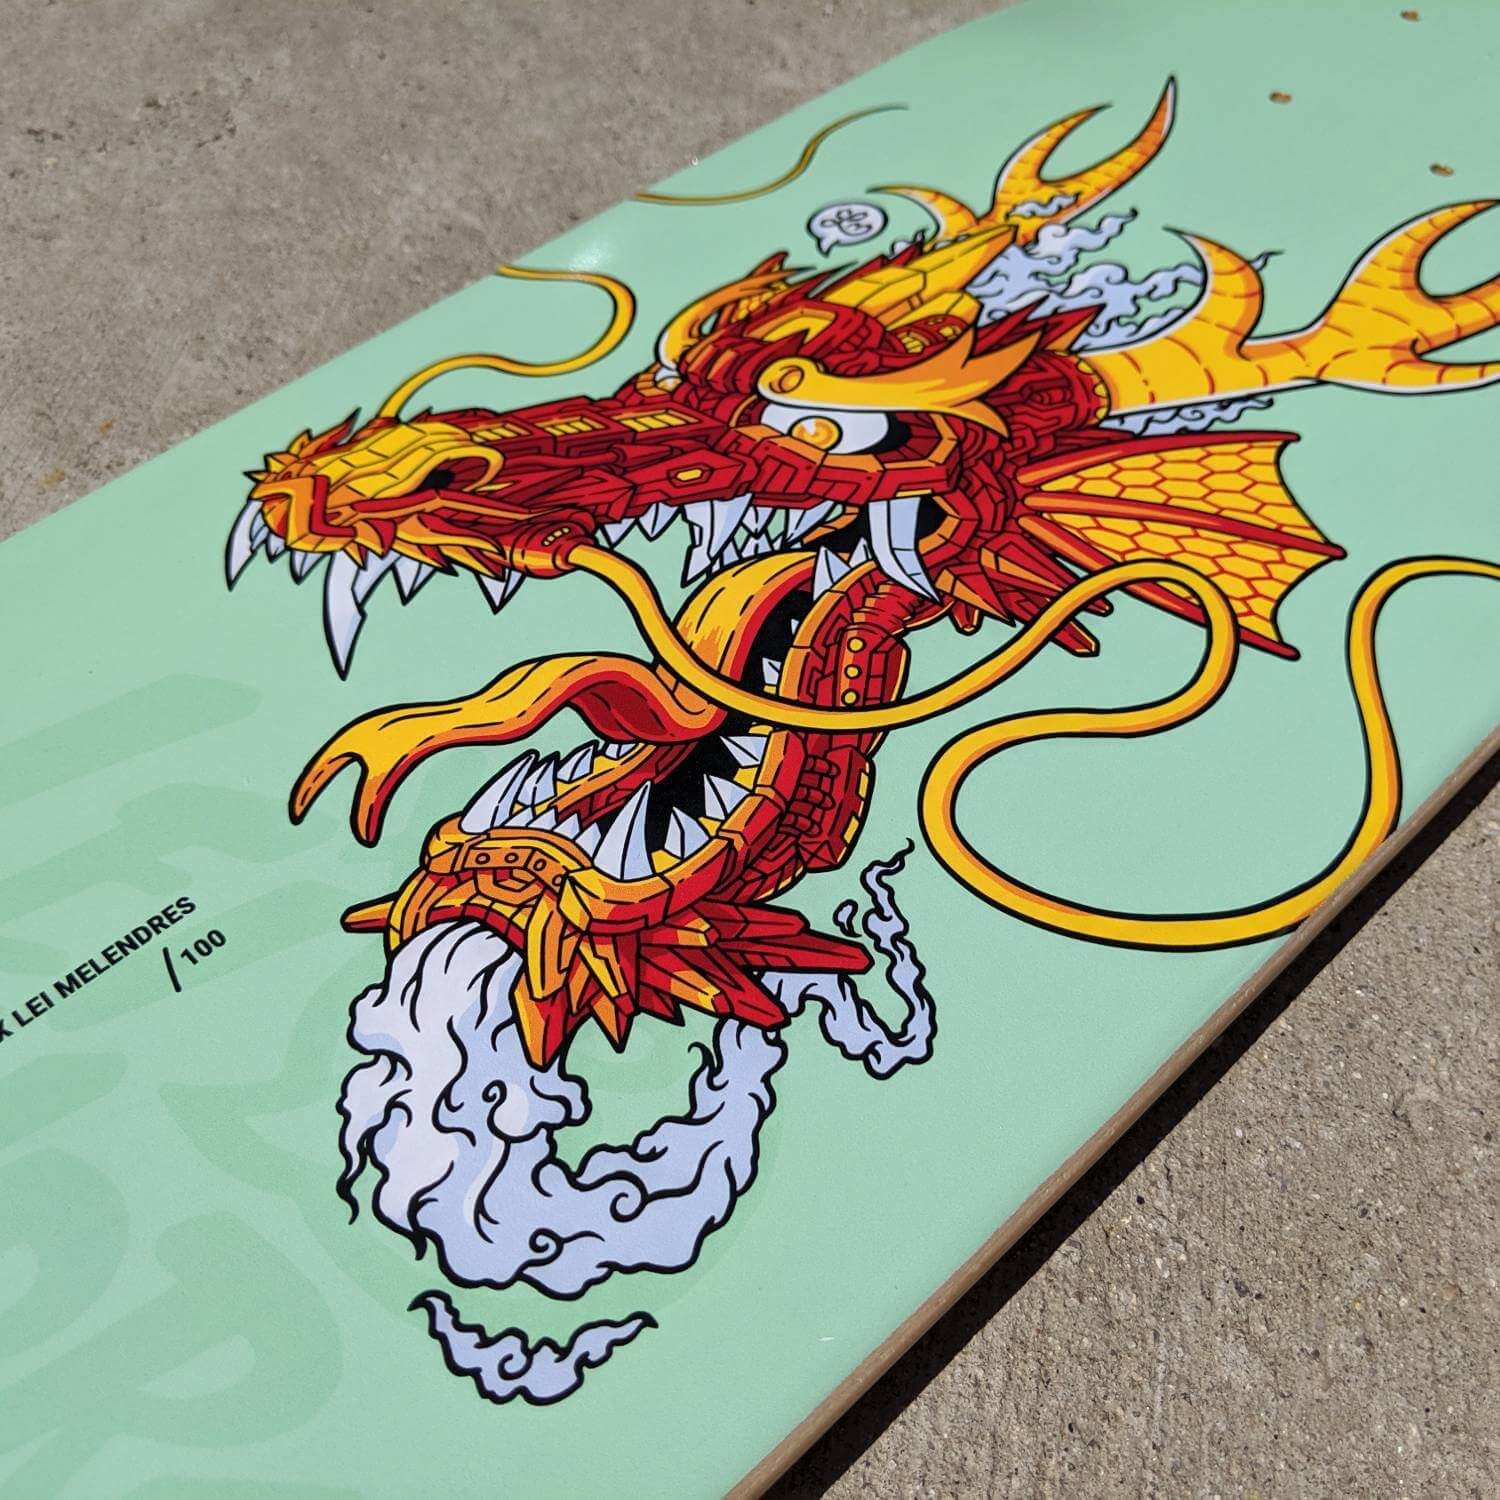 Limited Edition Lei Melendres Artist Series Skateboard